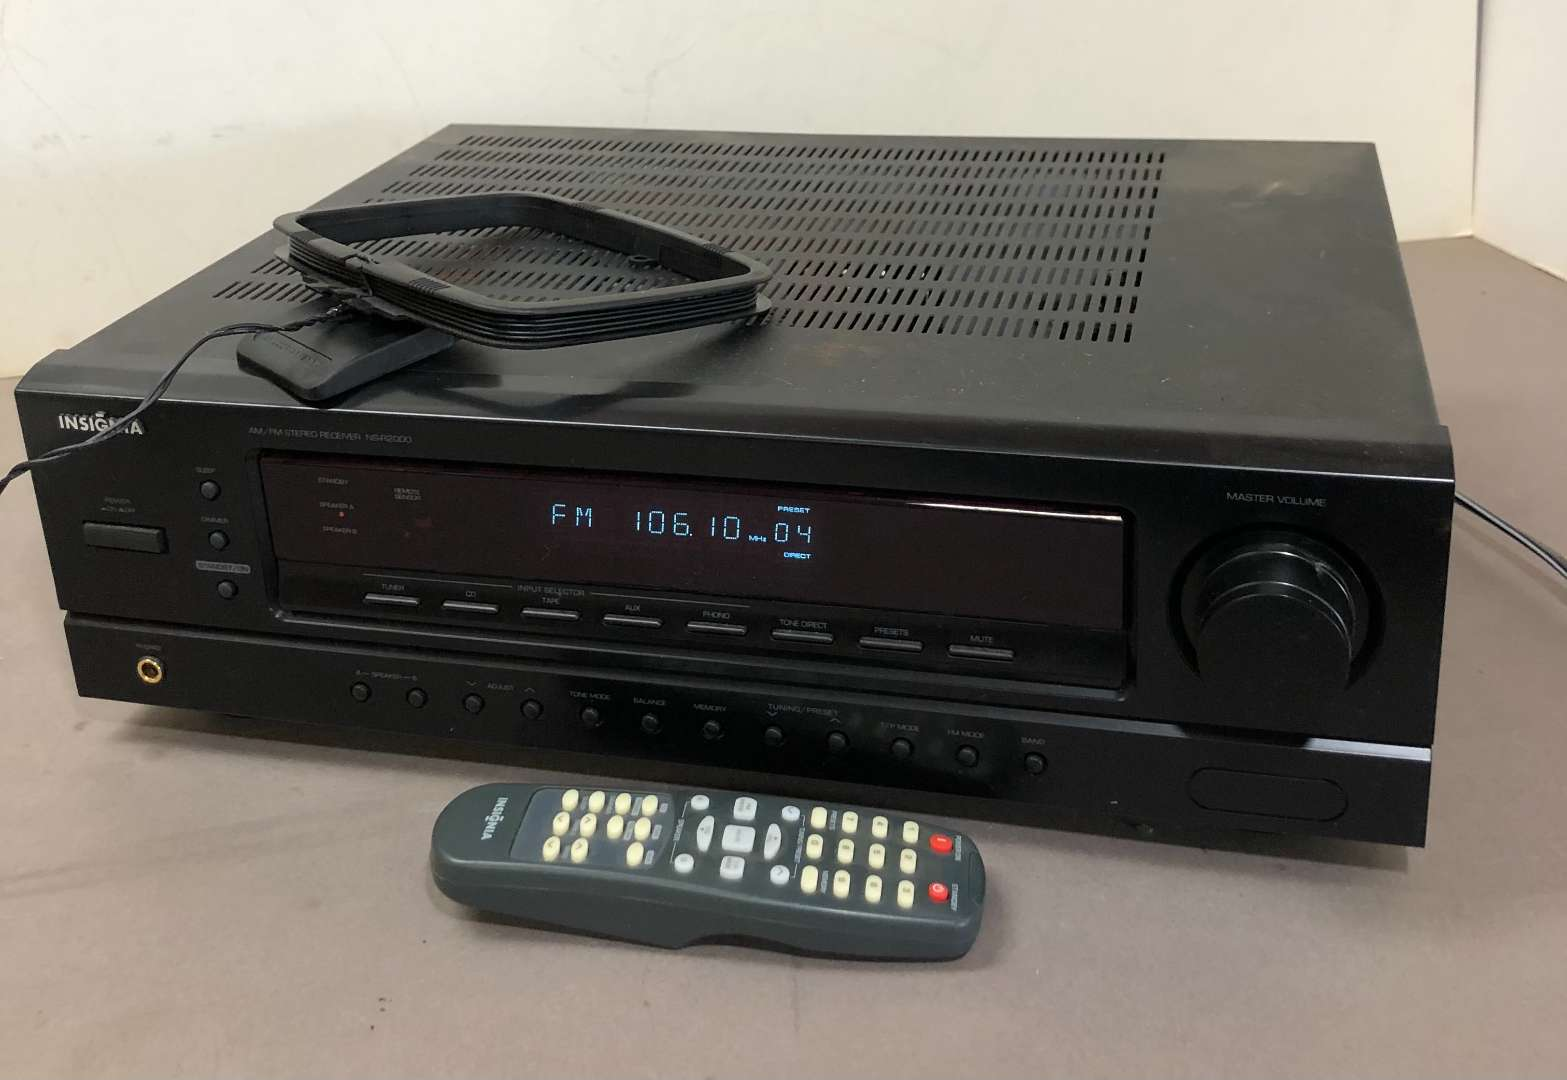 Lot # 274 - Insignia AM/FM Stereo Receiver NS-R2000 (main image)